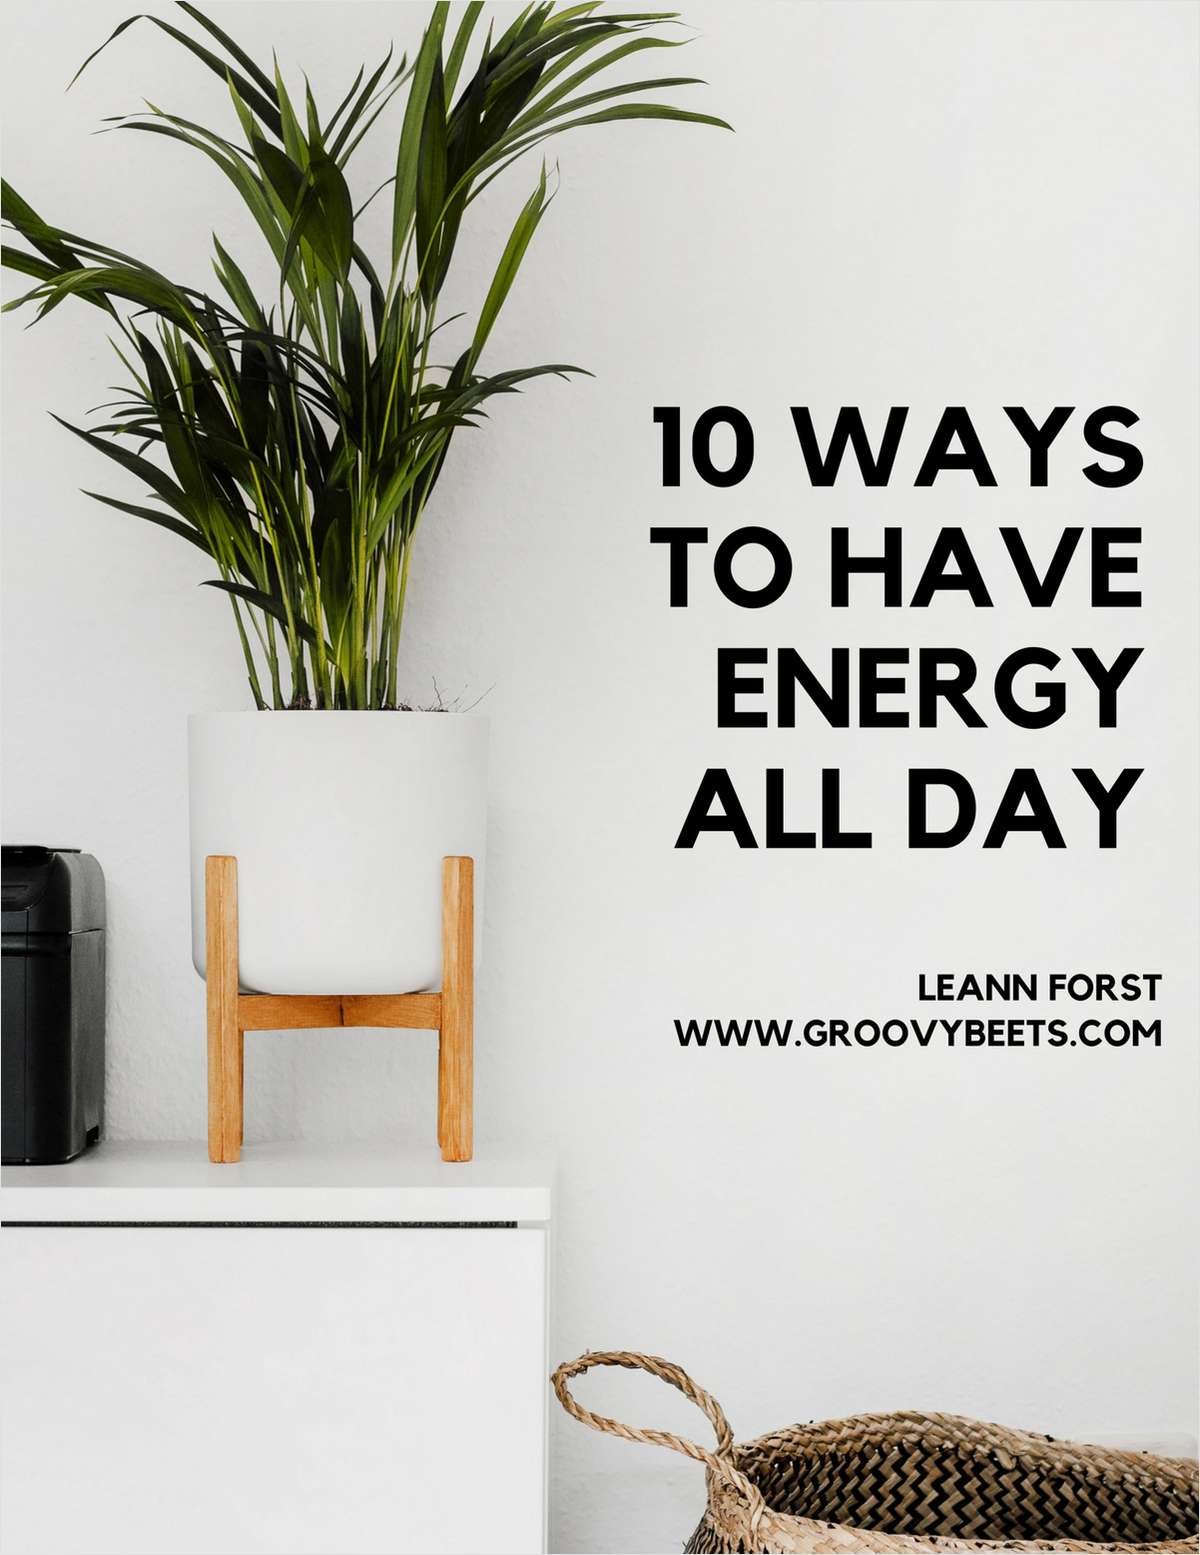 10 Ways to Have Energy All Day